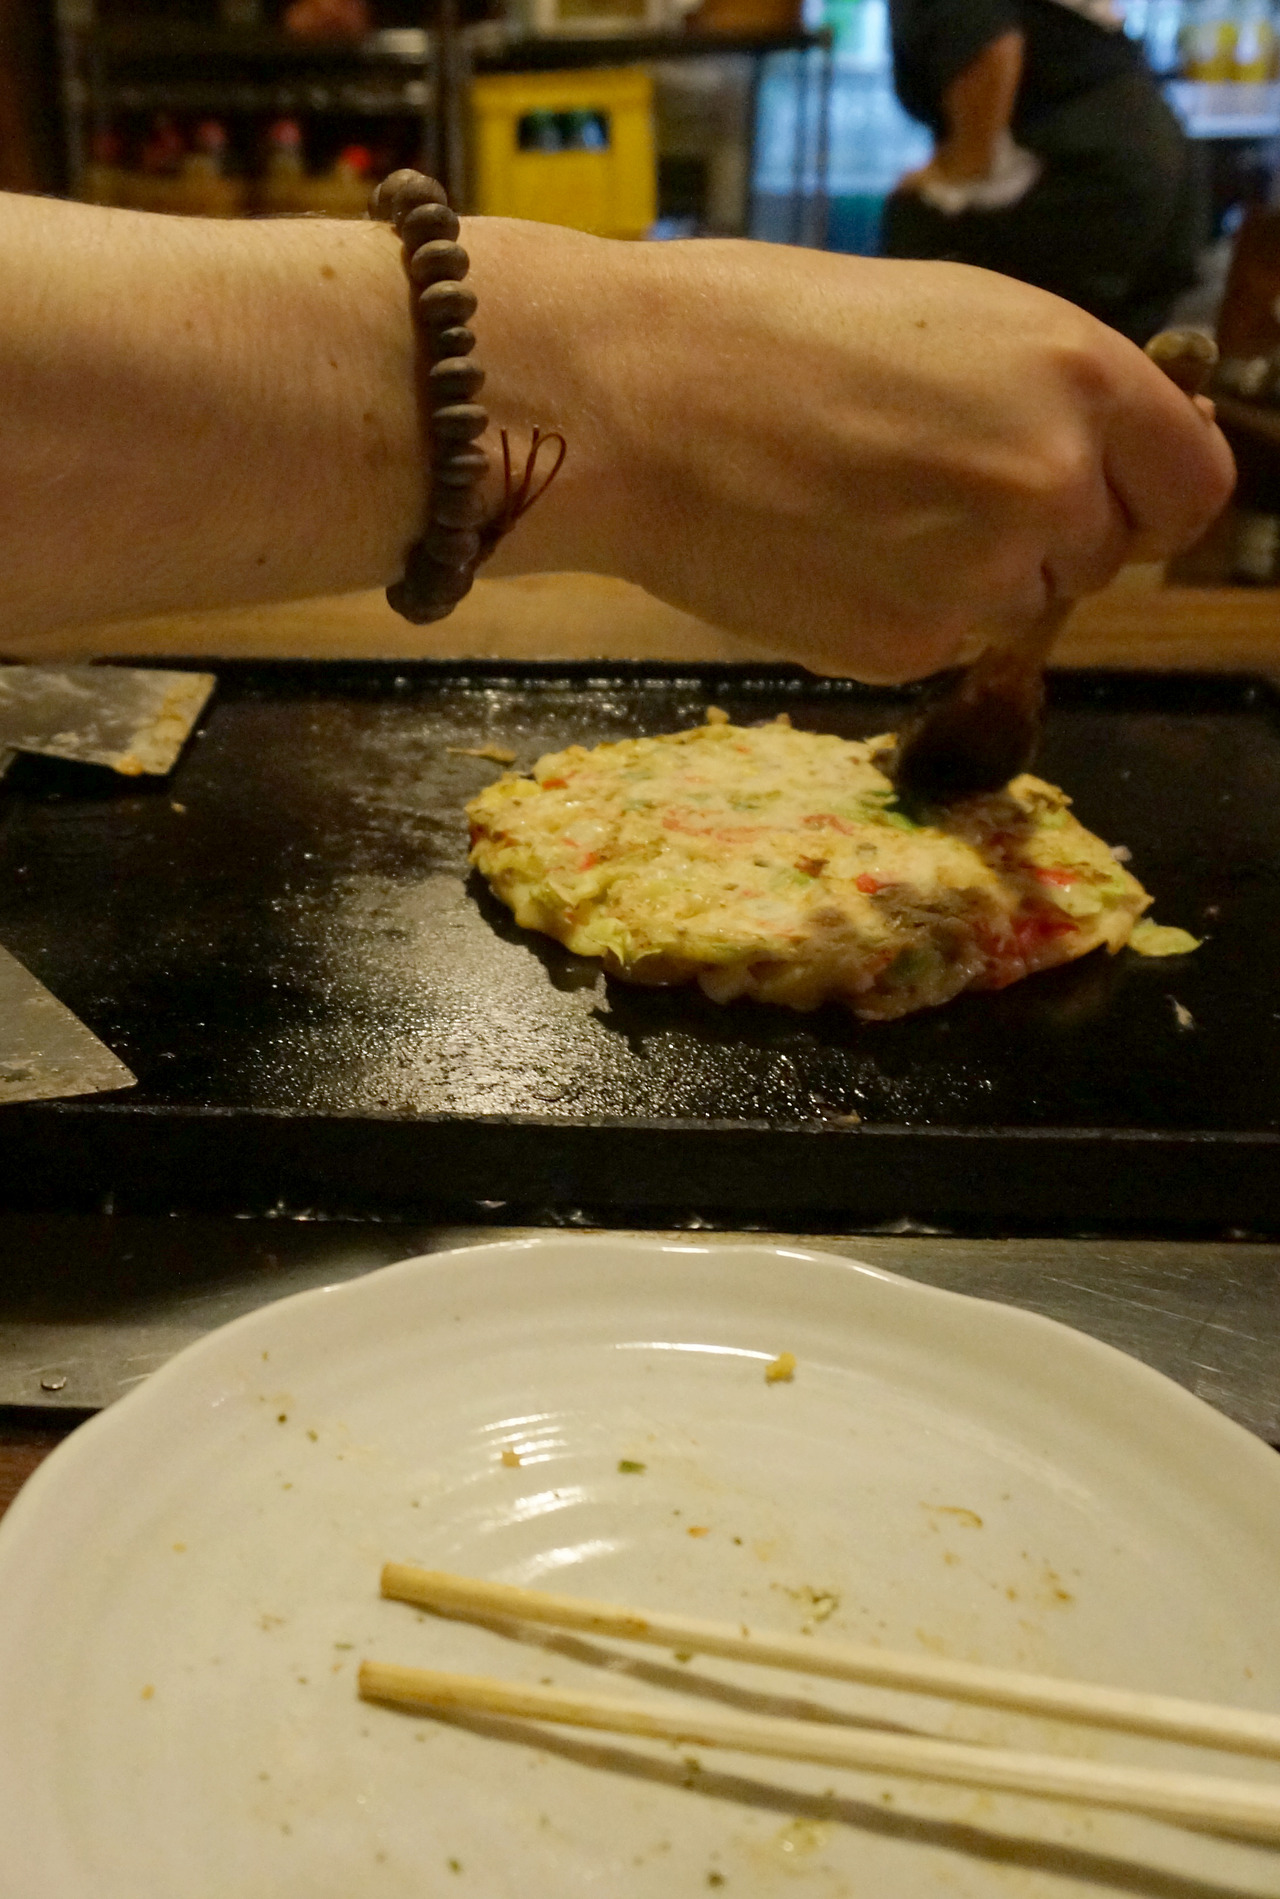 Anyone know a good place to get okonomiyaki in Chicago?